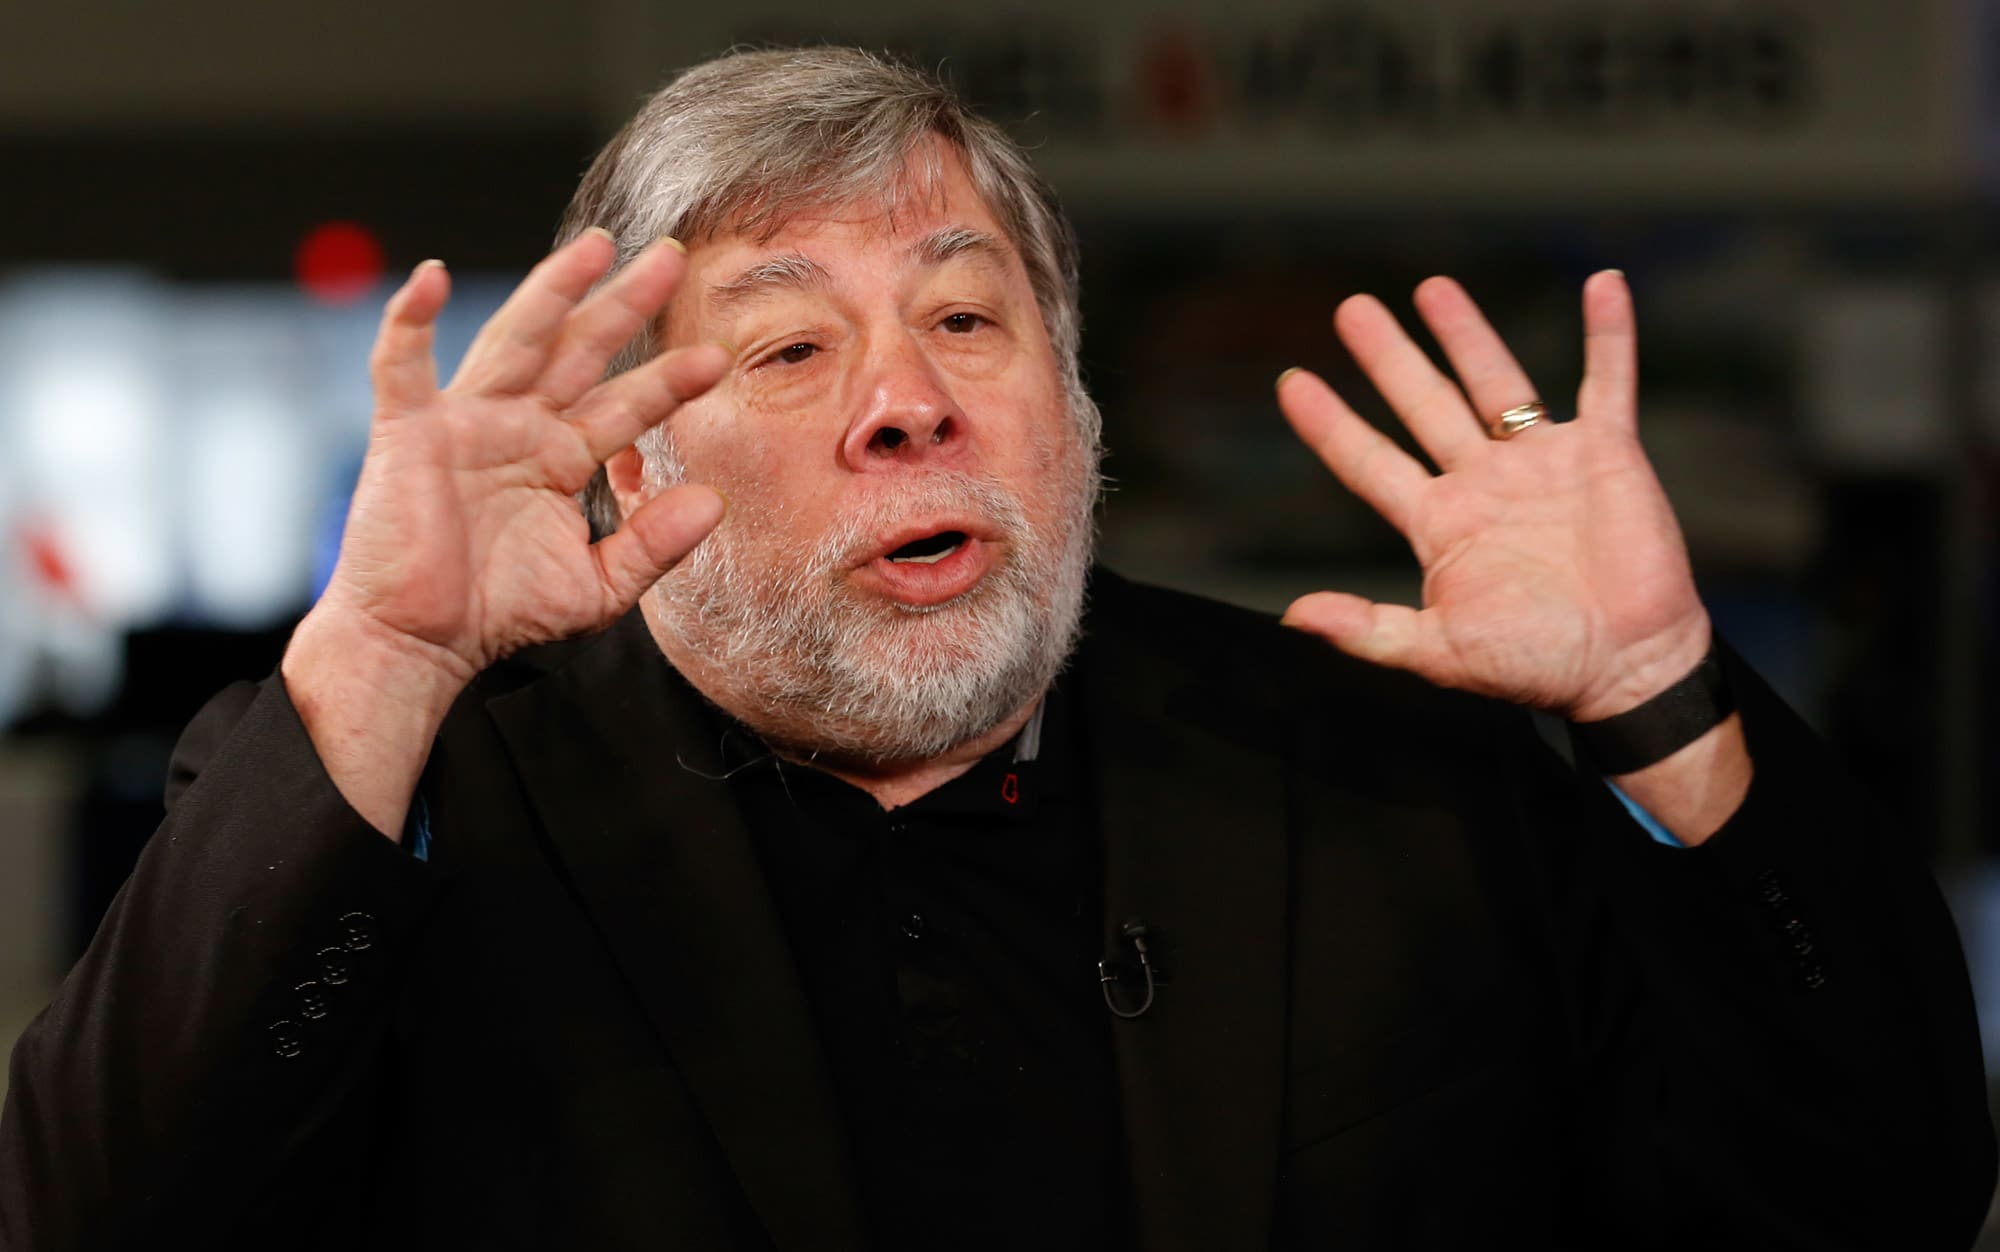 Steve Wozniak: 2 counterintuitive reasons I was able to build 'A+' products when Apple first started